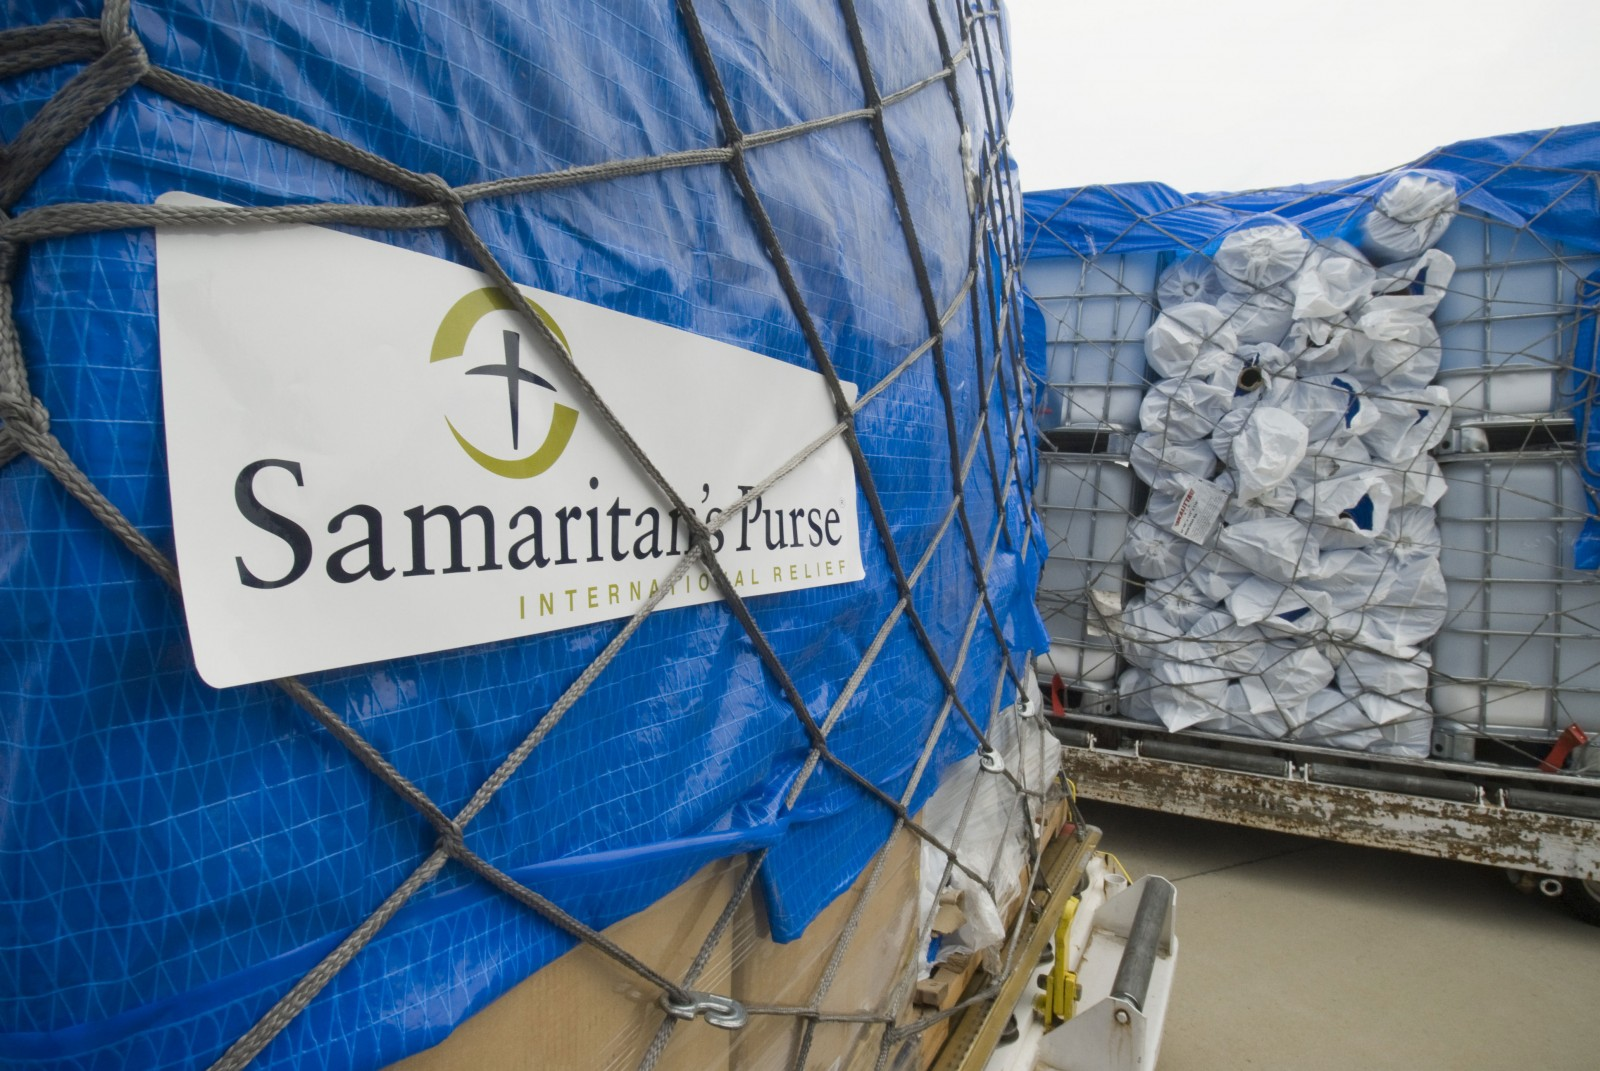 Samaritan's Purse is an international Christian relief organization working in more than 100 countries to provide aid to victims of war, disease, natural disaster, poverty, famine and persecution.